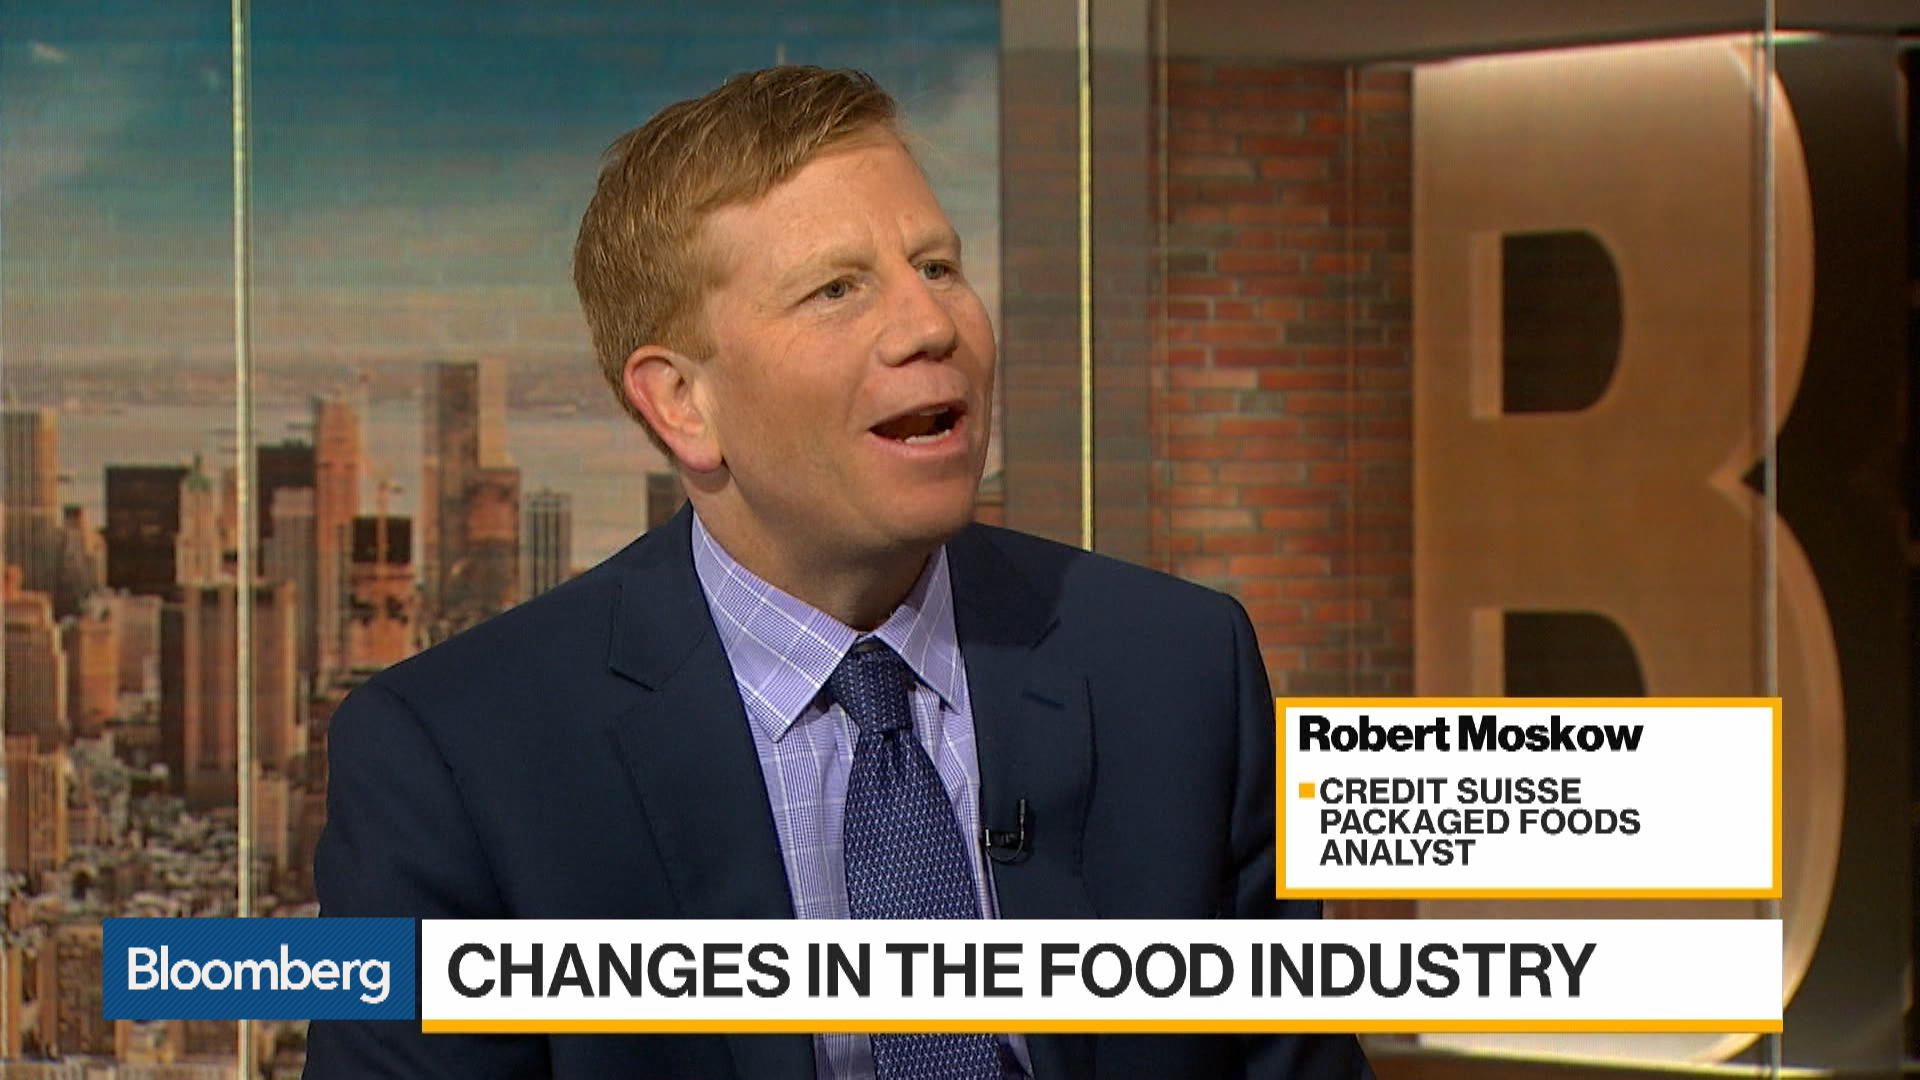 Food: Plant-Based Meat Alternatives Take Root With Consumers